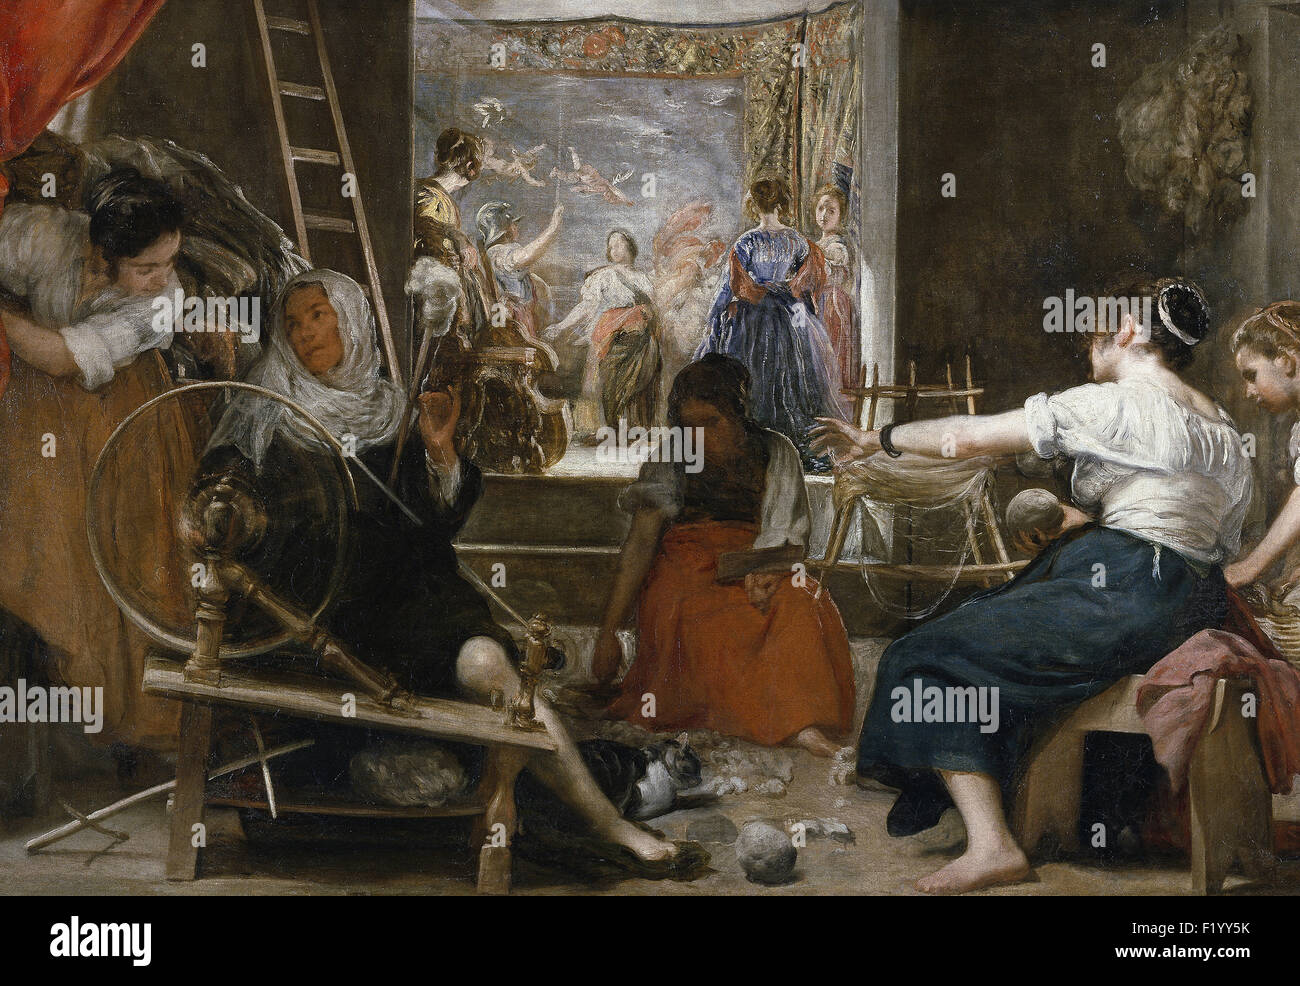 Diego Velázquez - The Spinners, or The Fable of Arachne - Stock Image